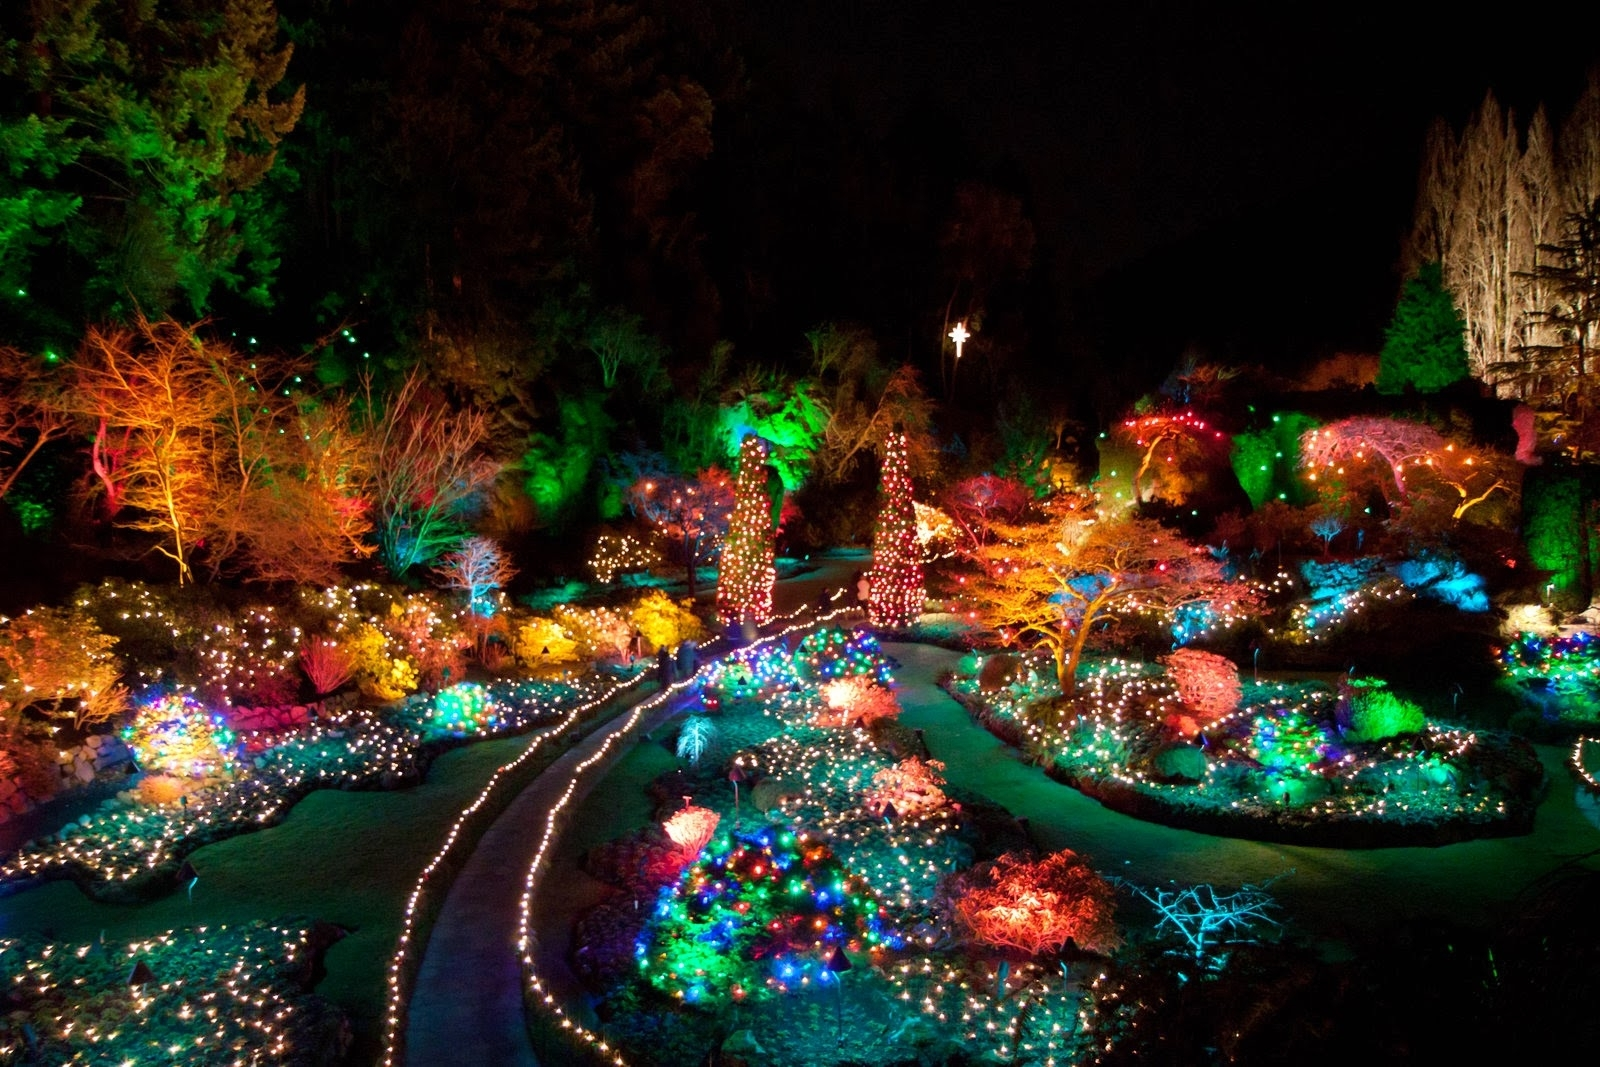 The Garden Of Lights At Emperors Palace – Hello Jhb regarding Garden Of Light At Emperors Palace